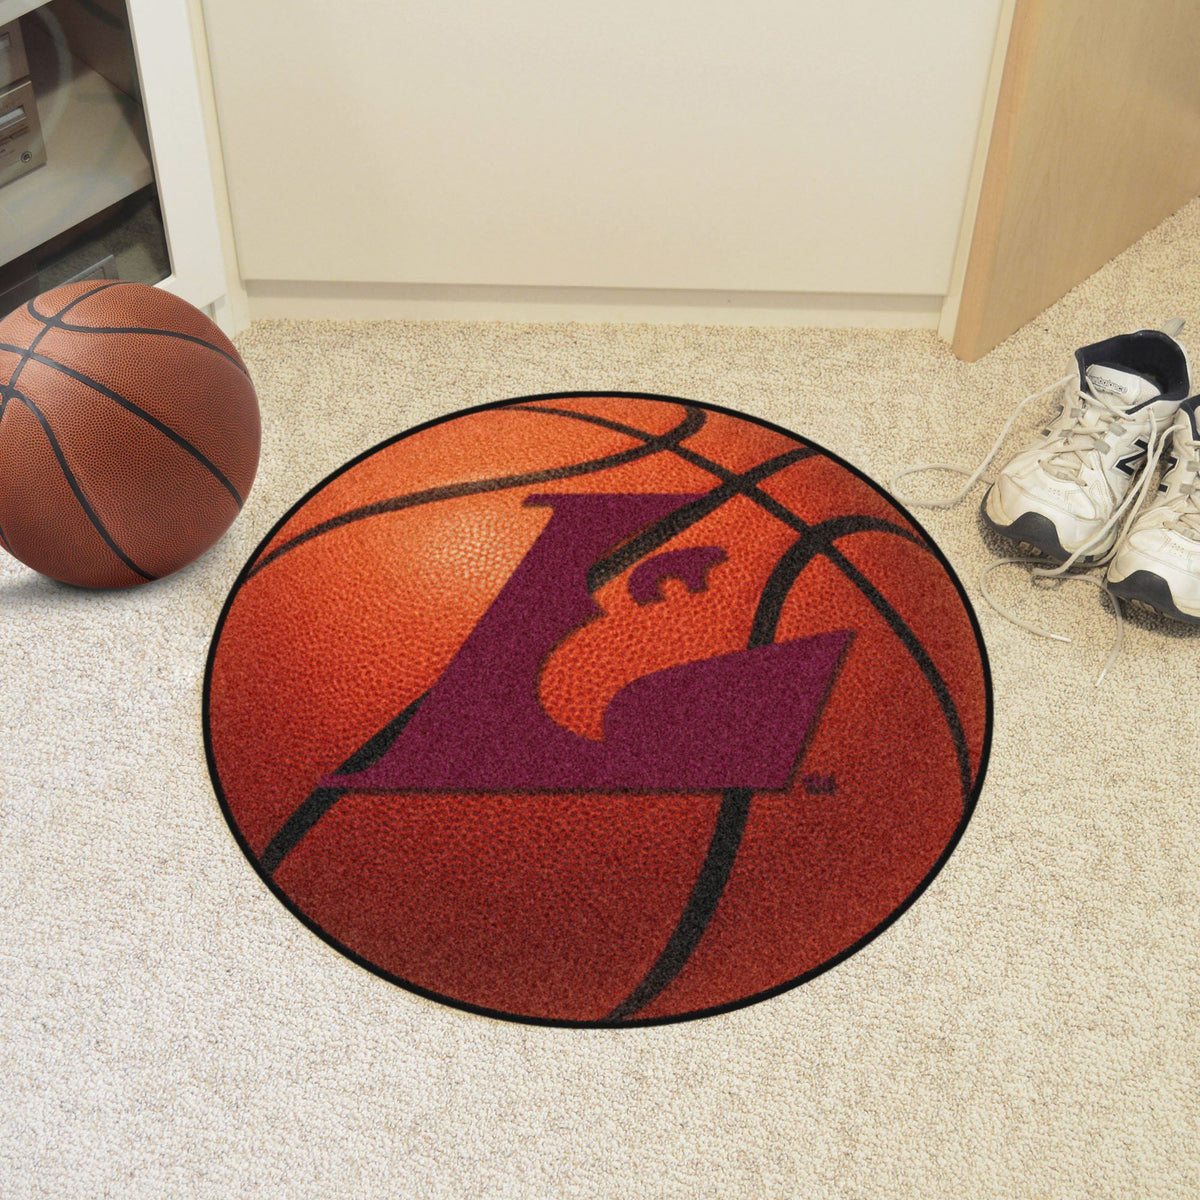 Collegiate - Basketball Mat: T - Z Collegiate Mats, Rectangular Mats, Basketball Mat, Collegiate, Home Fan Mats Wisconsin-La Crosse